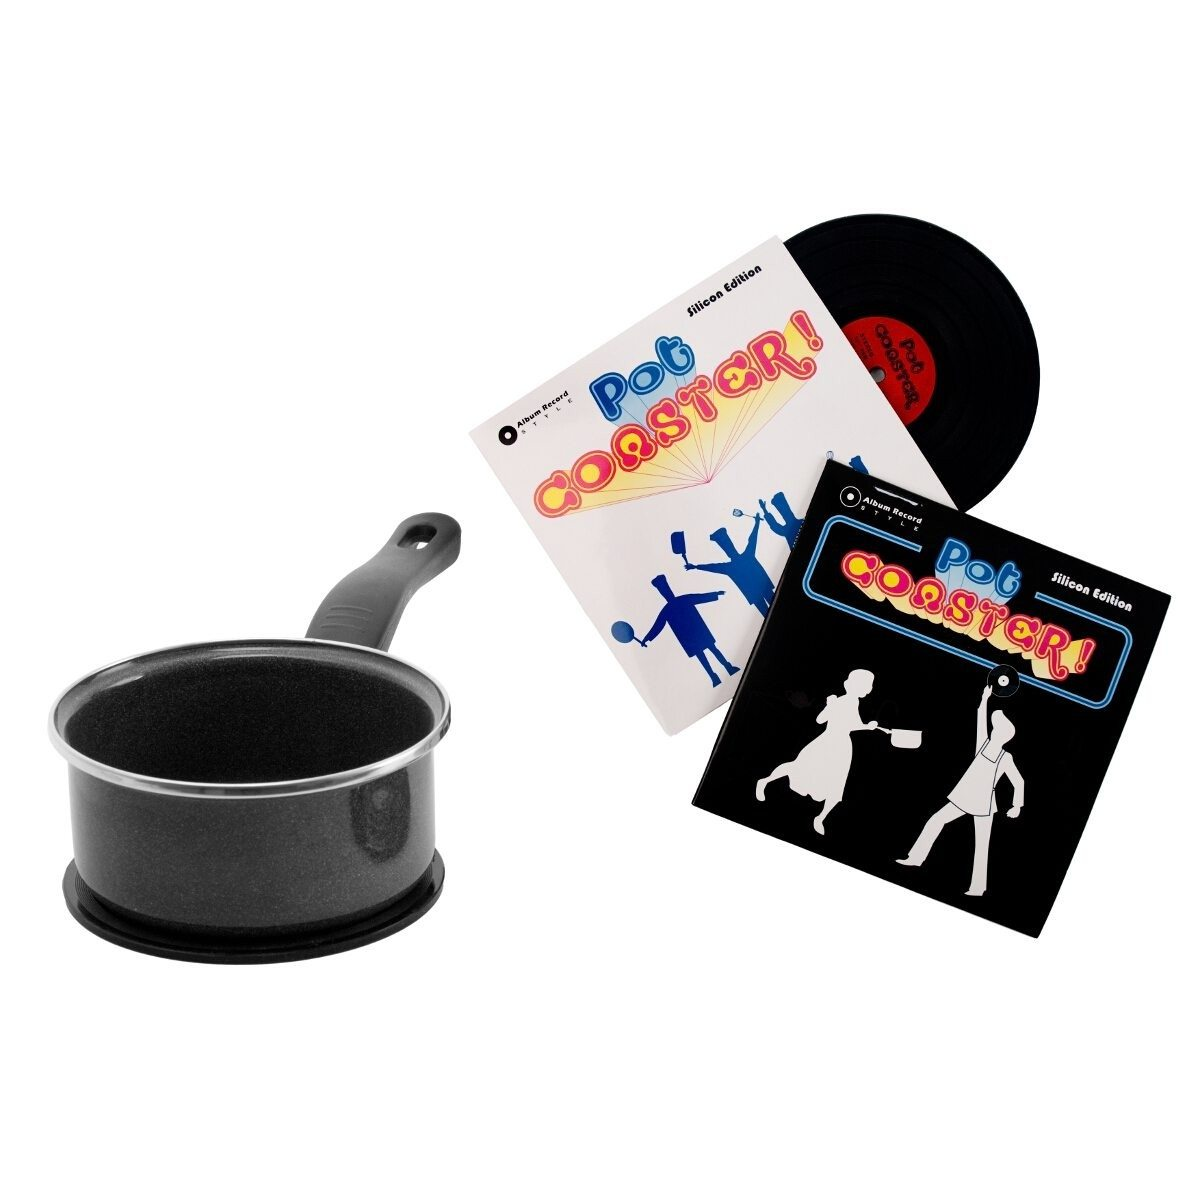 Coaster for Cooking Pot - Vinyl Record